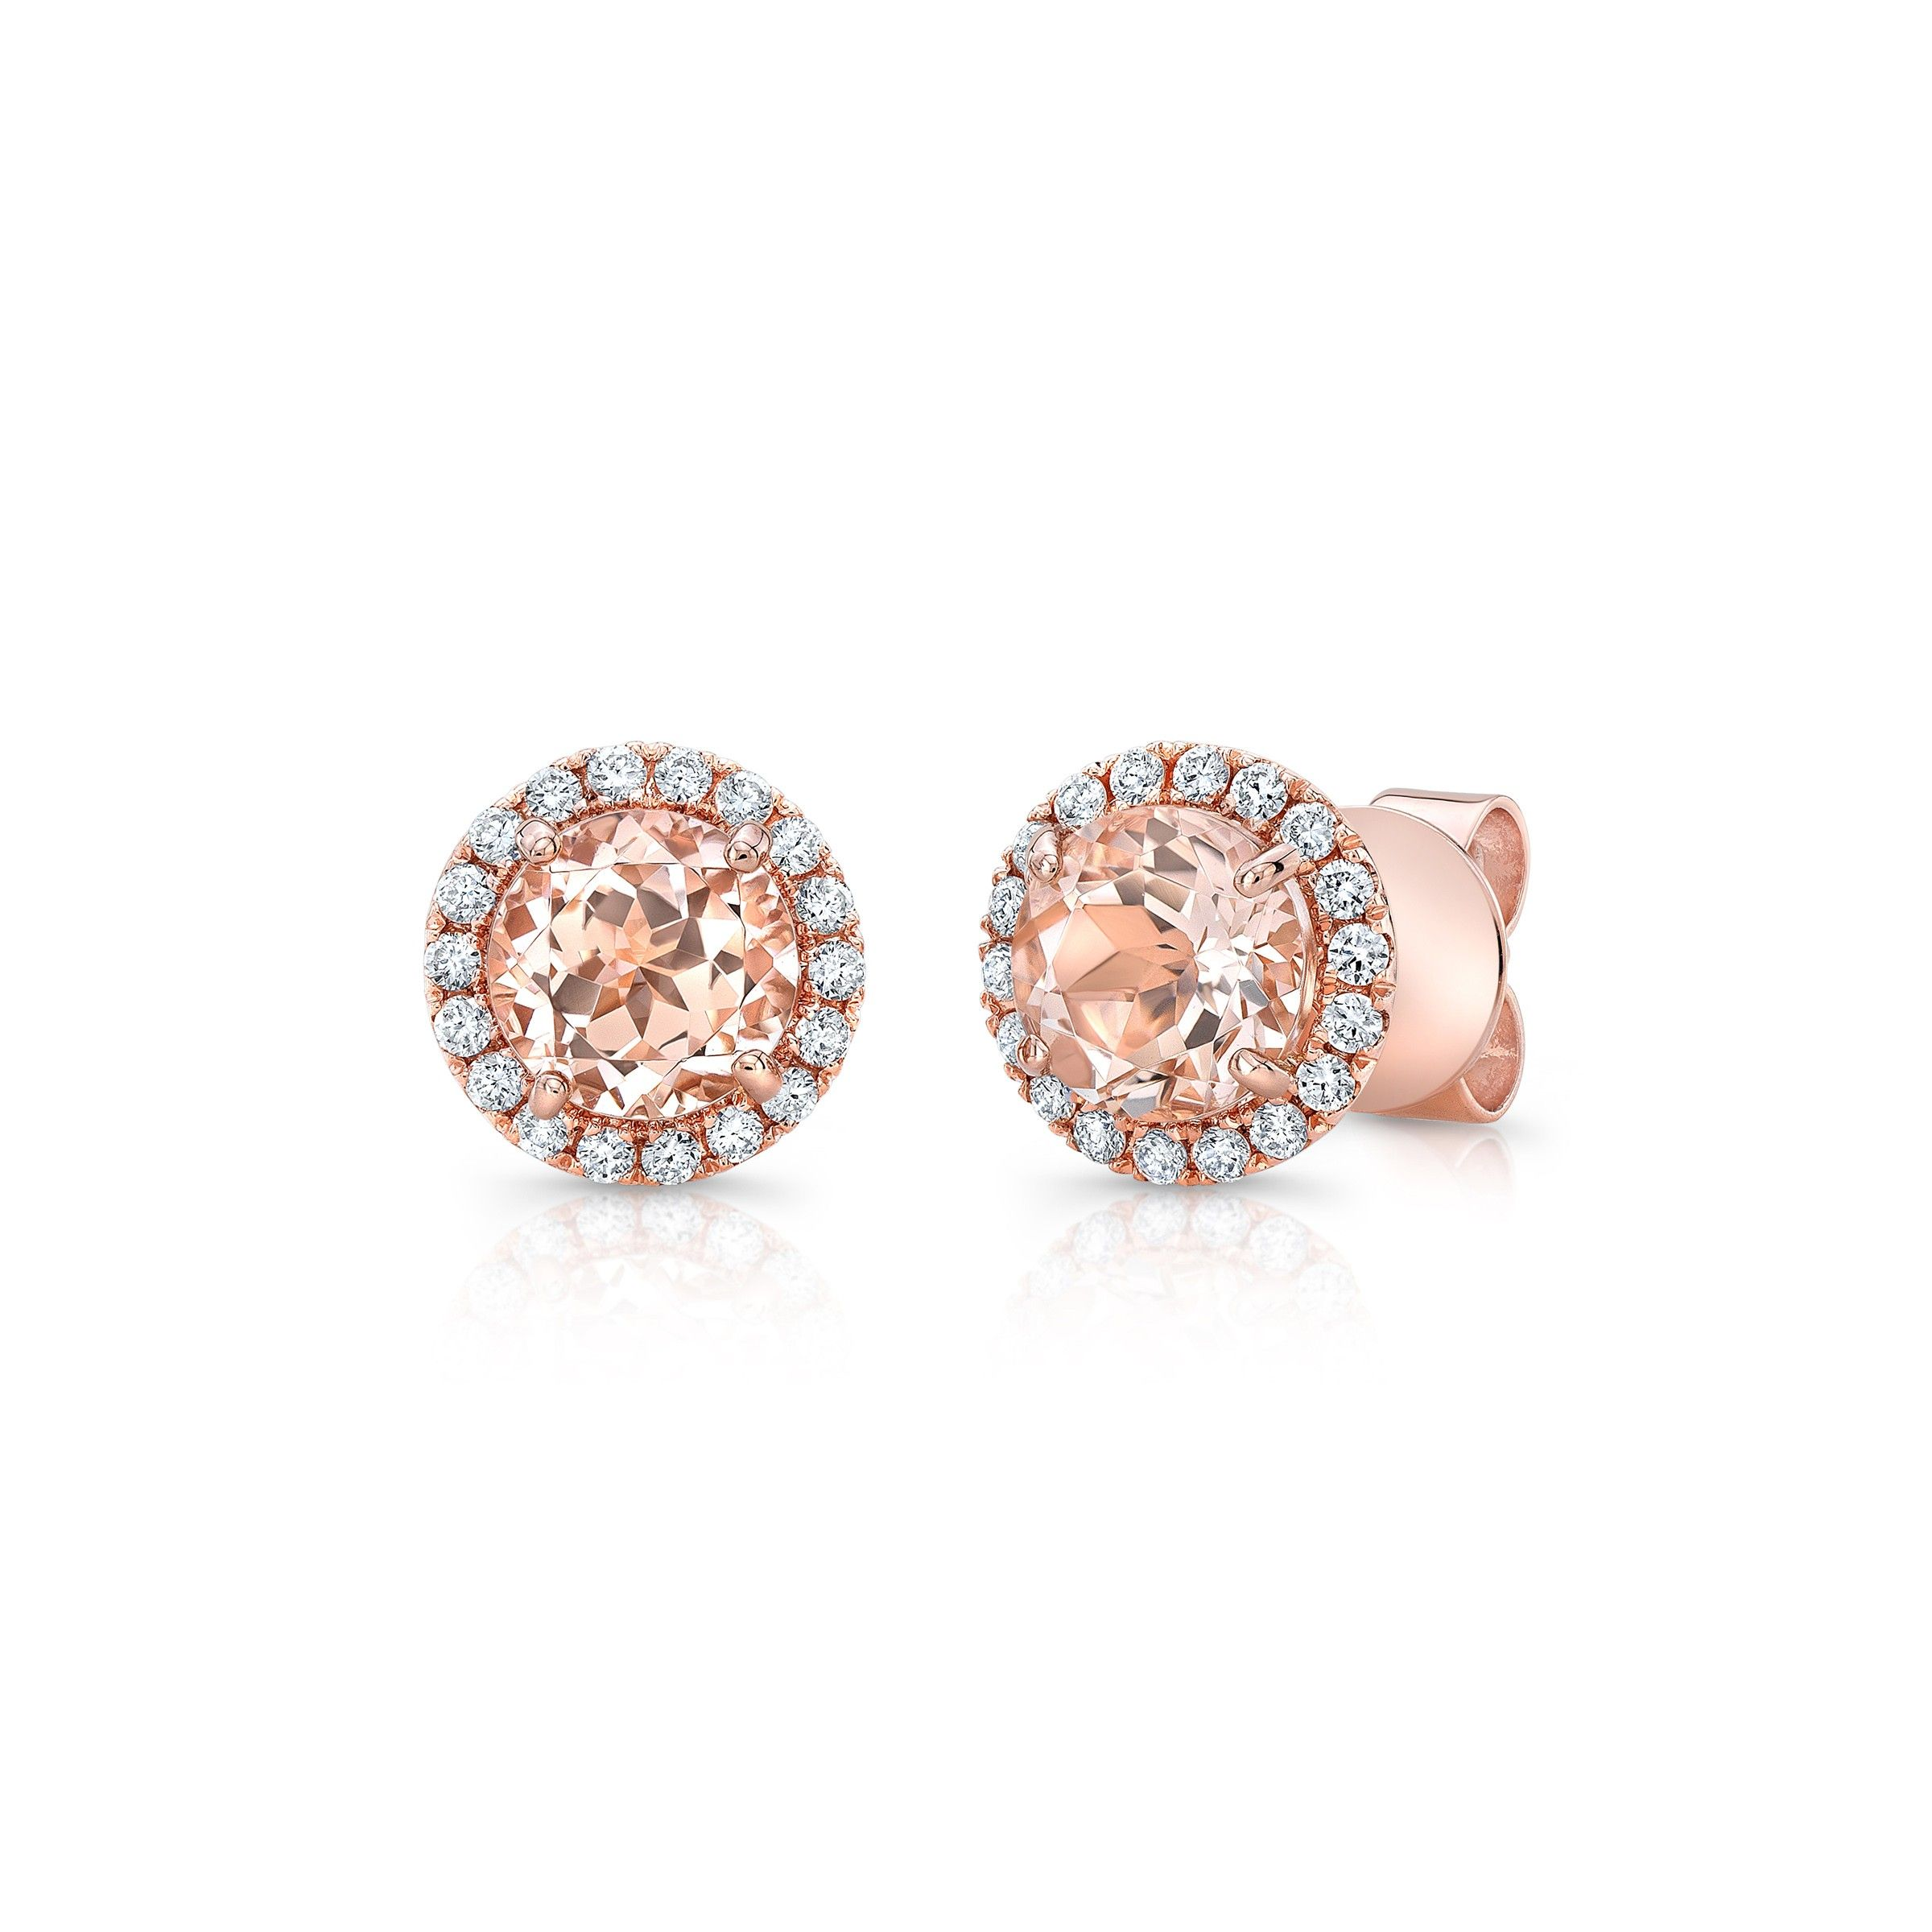 Lovely morganite earrings set in 14k rose gold and surrounded by